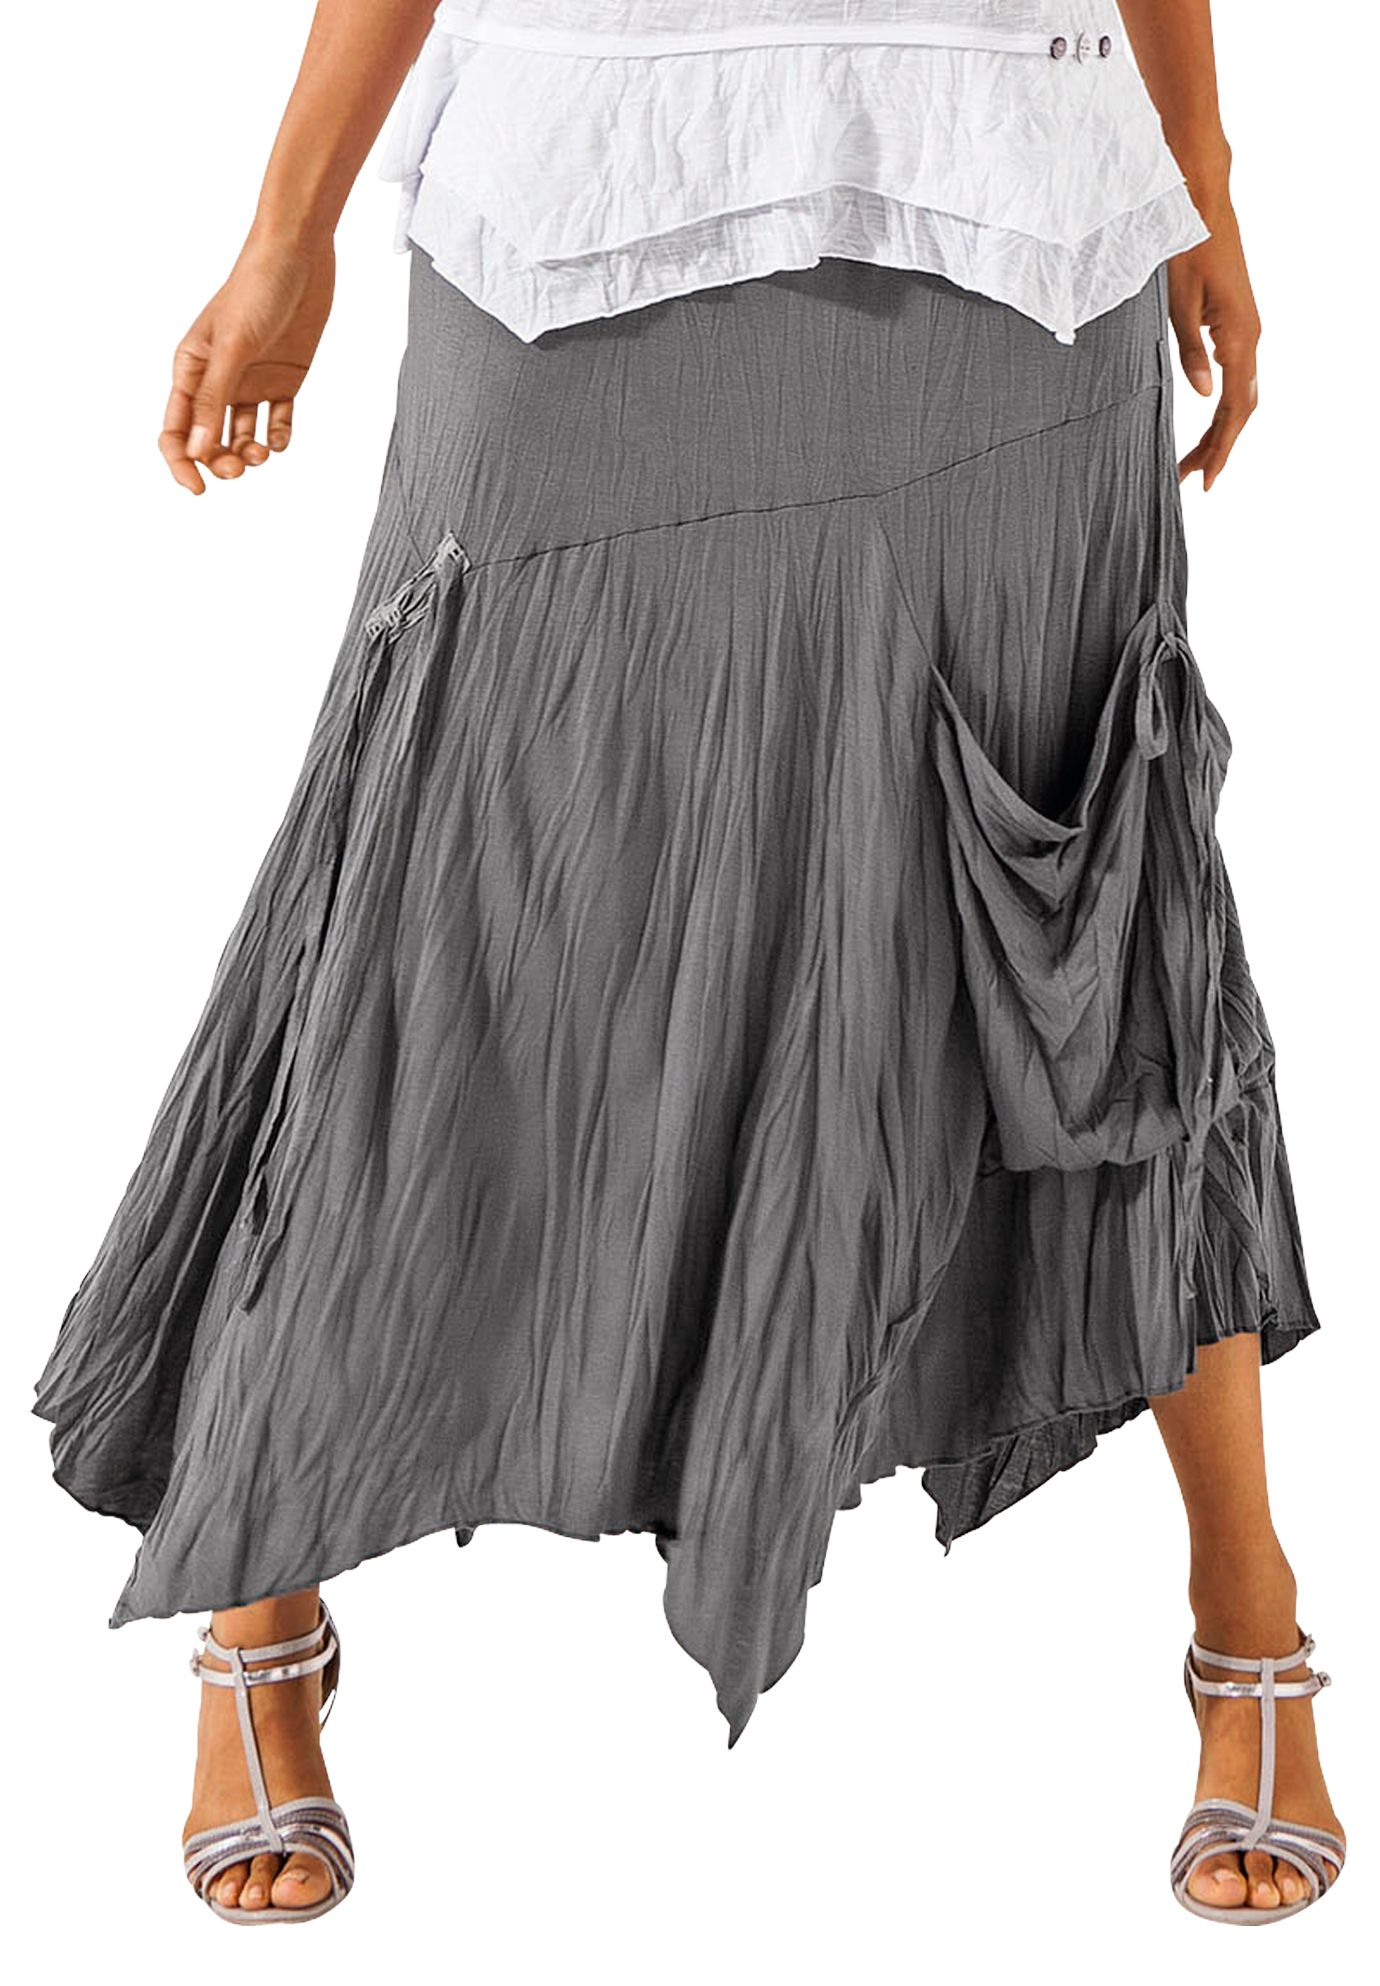 Roamans Taillissime Plus Size Grey Asymmetric Hem Dress: Hankie Hem Skirt By Taillissime®